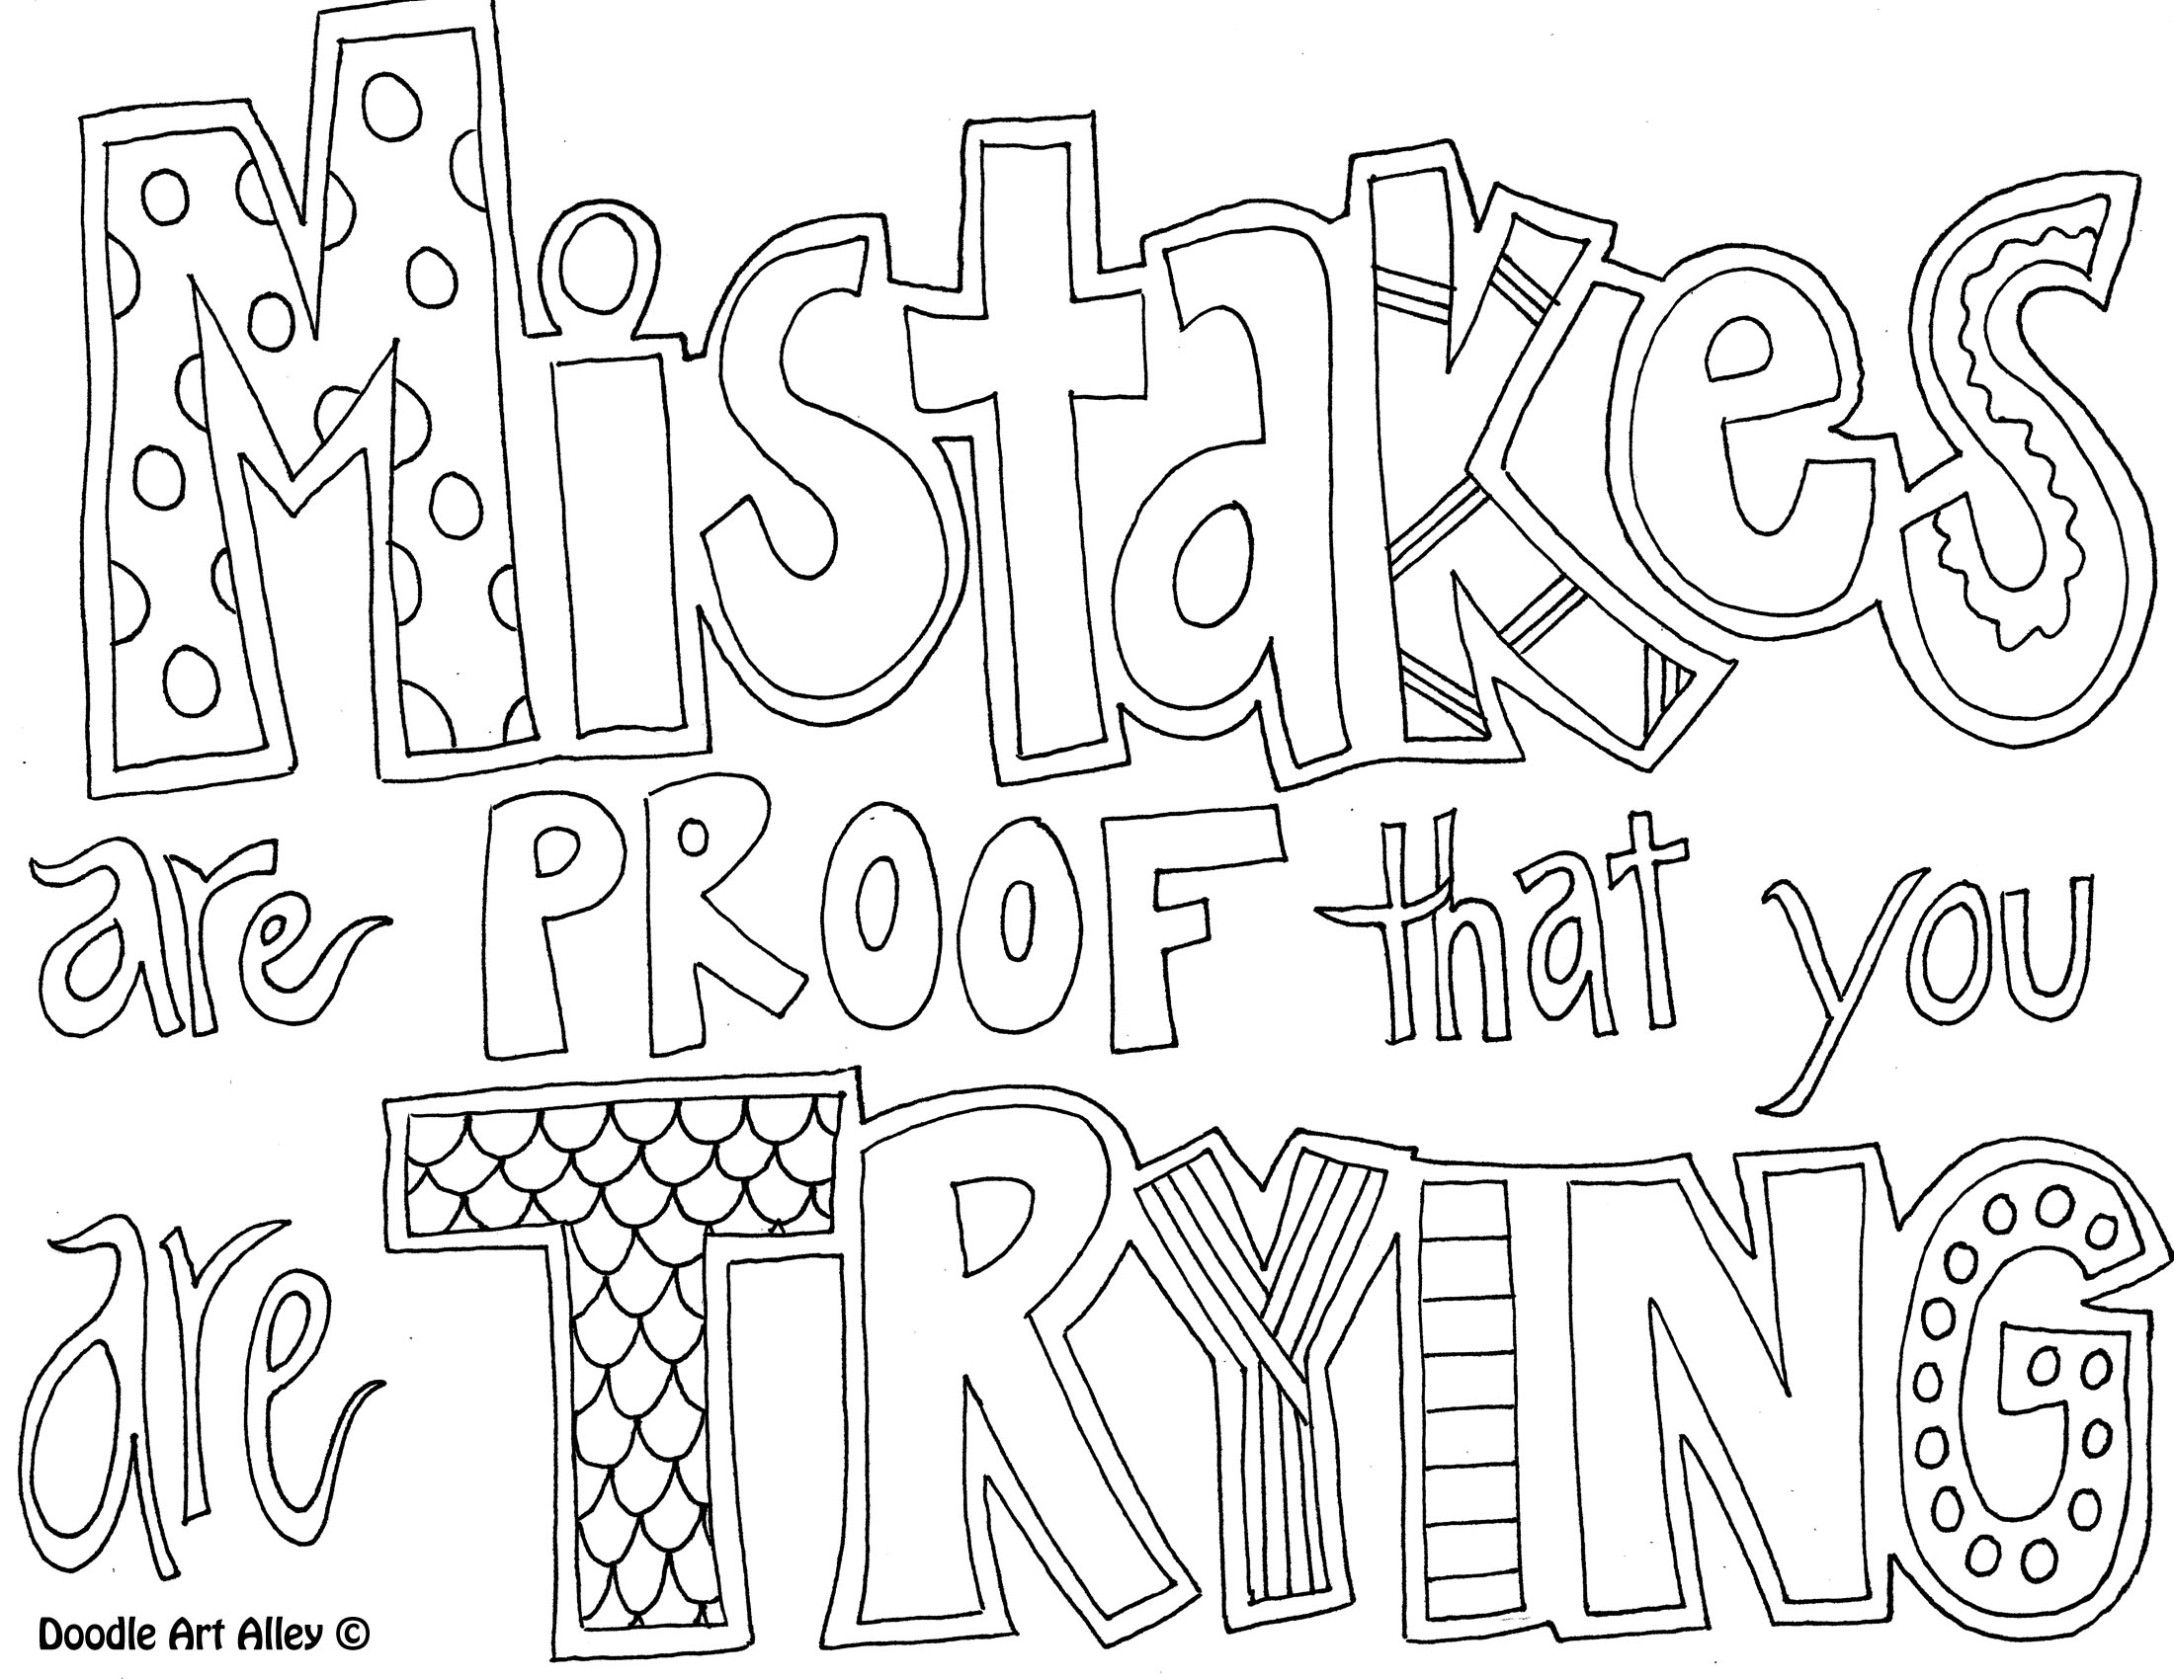 - Mistakes Are Proof That You Are Trying